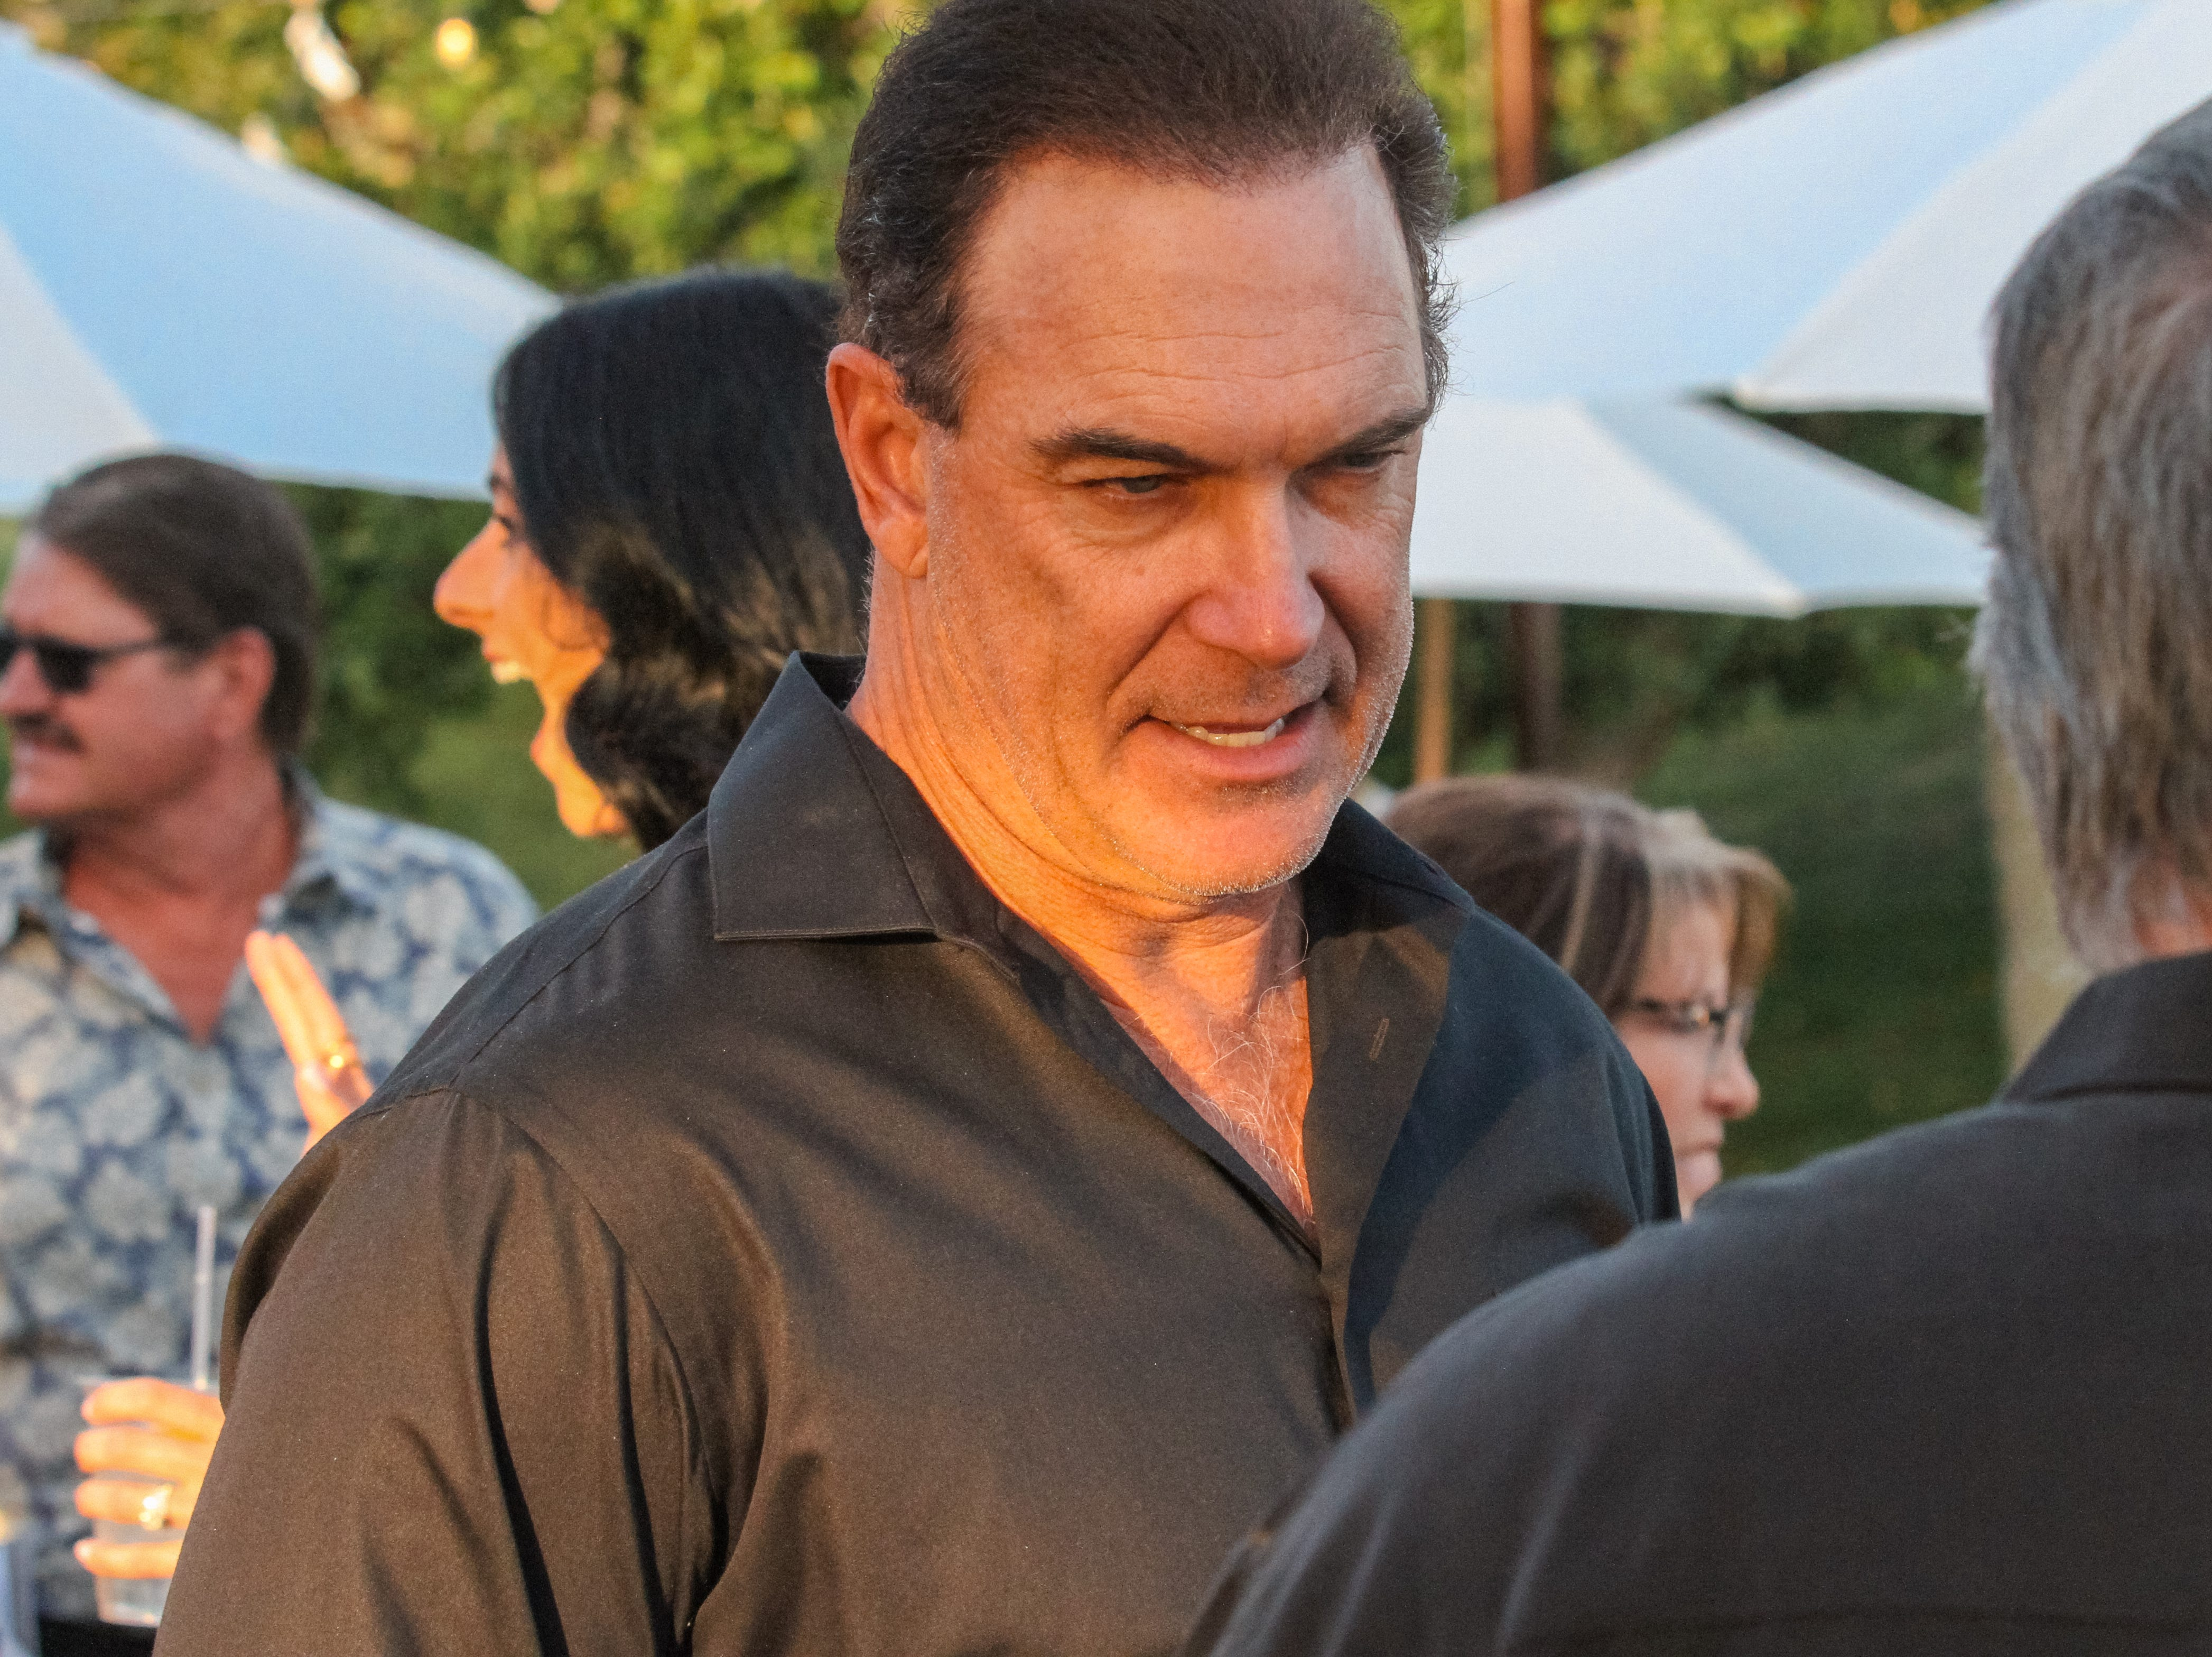 Patrick Warburton visits with guests at Alice Cooper's Rock & Roll Fundraising Bash at the Las Sendas Golf Club in Mesa on April 27, 2019.